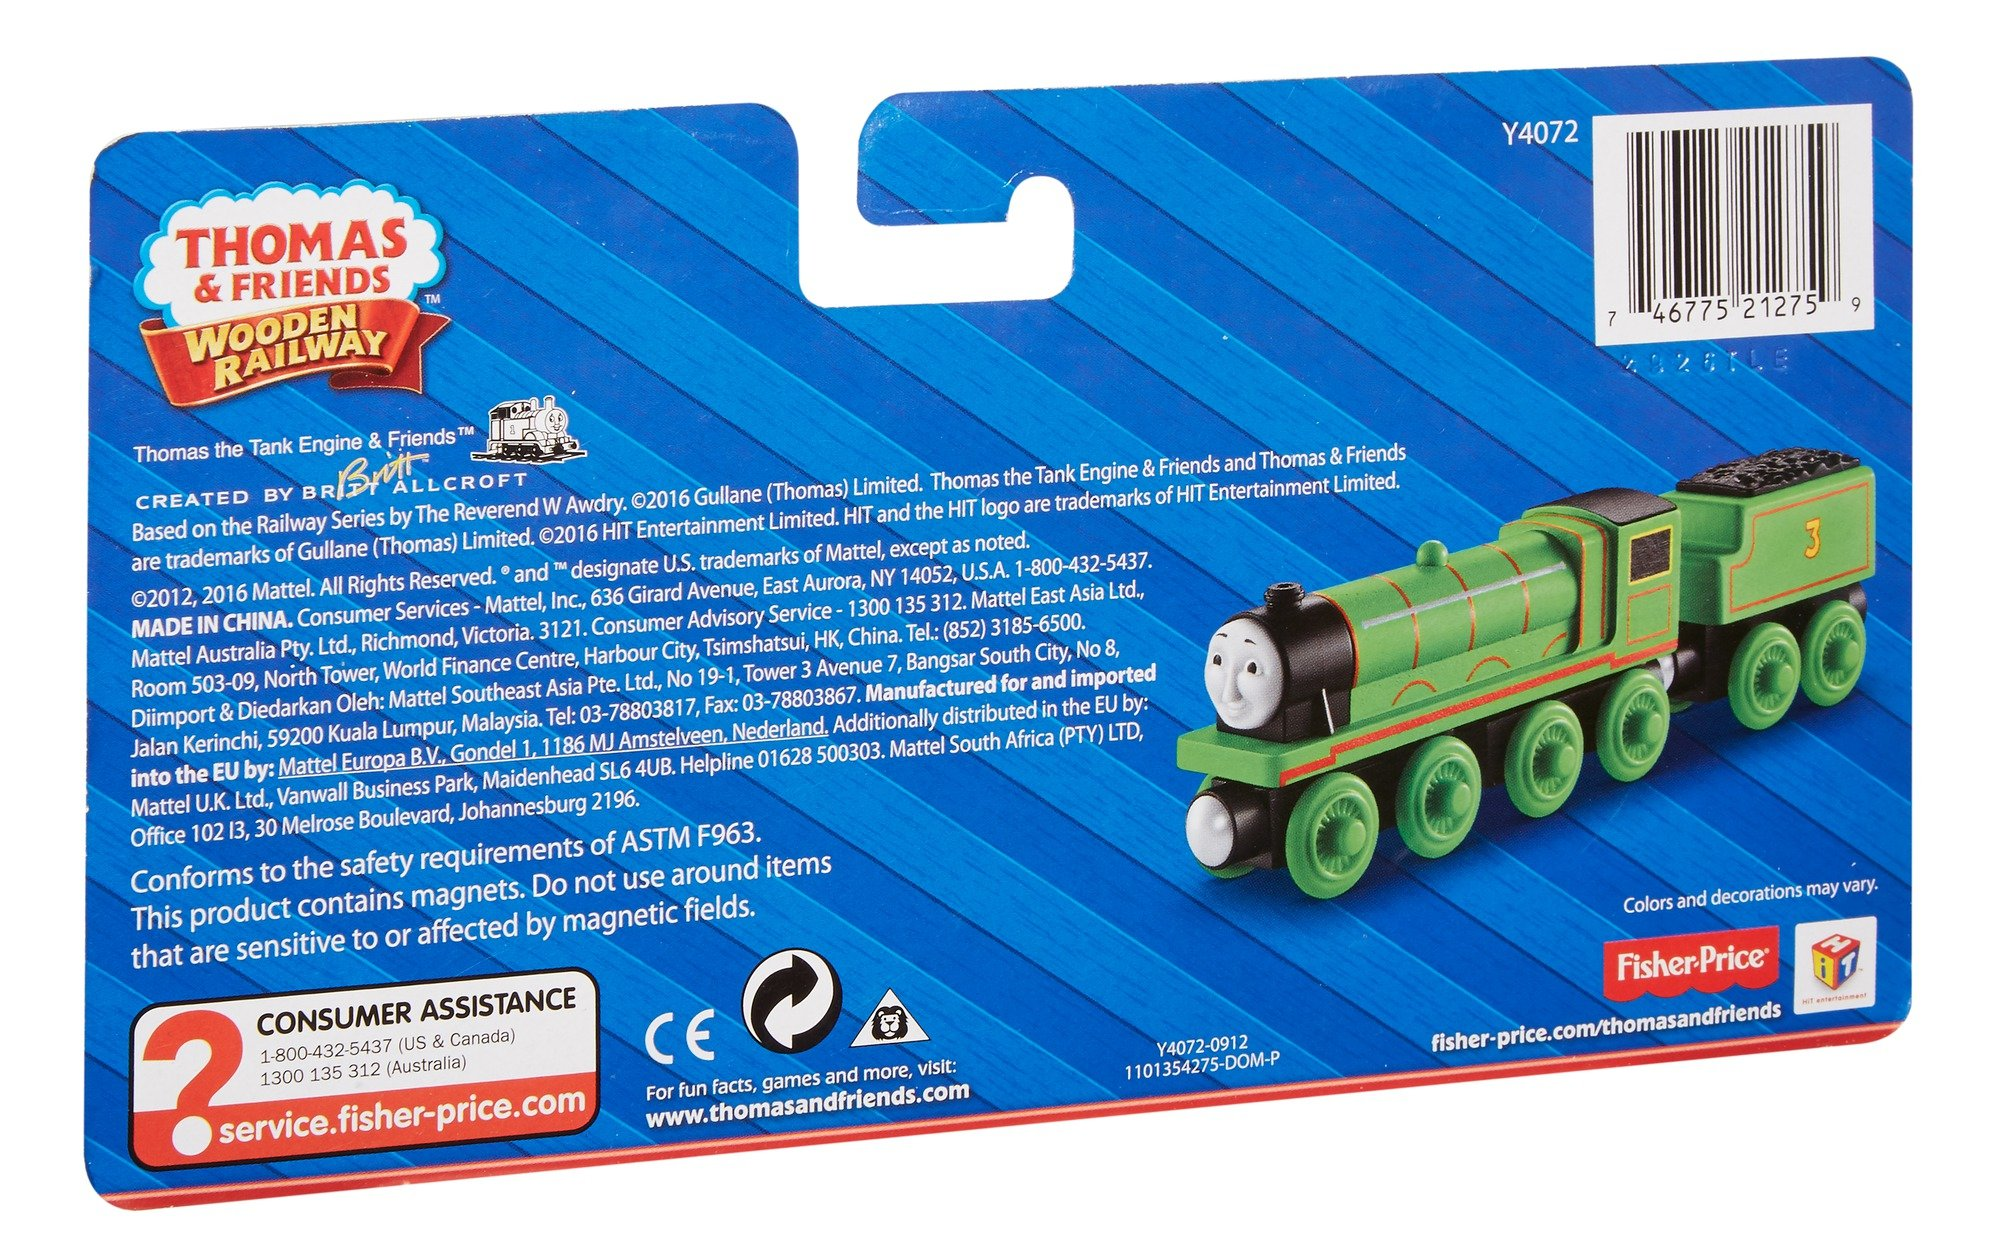 Thomas & Friends Fisher-Price Wooden Railway, Henry